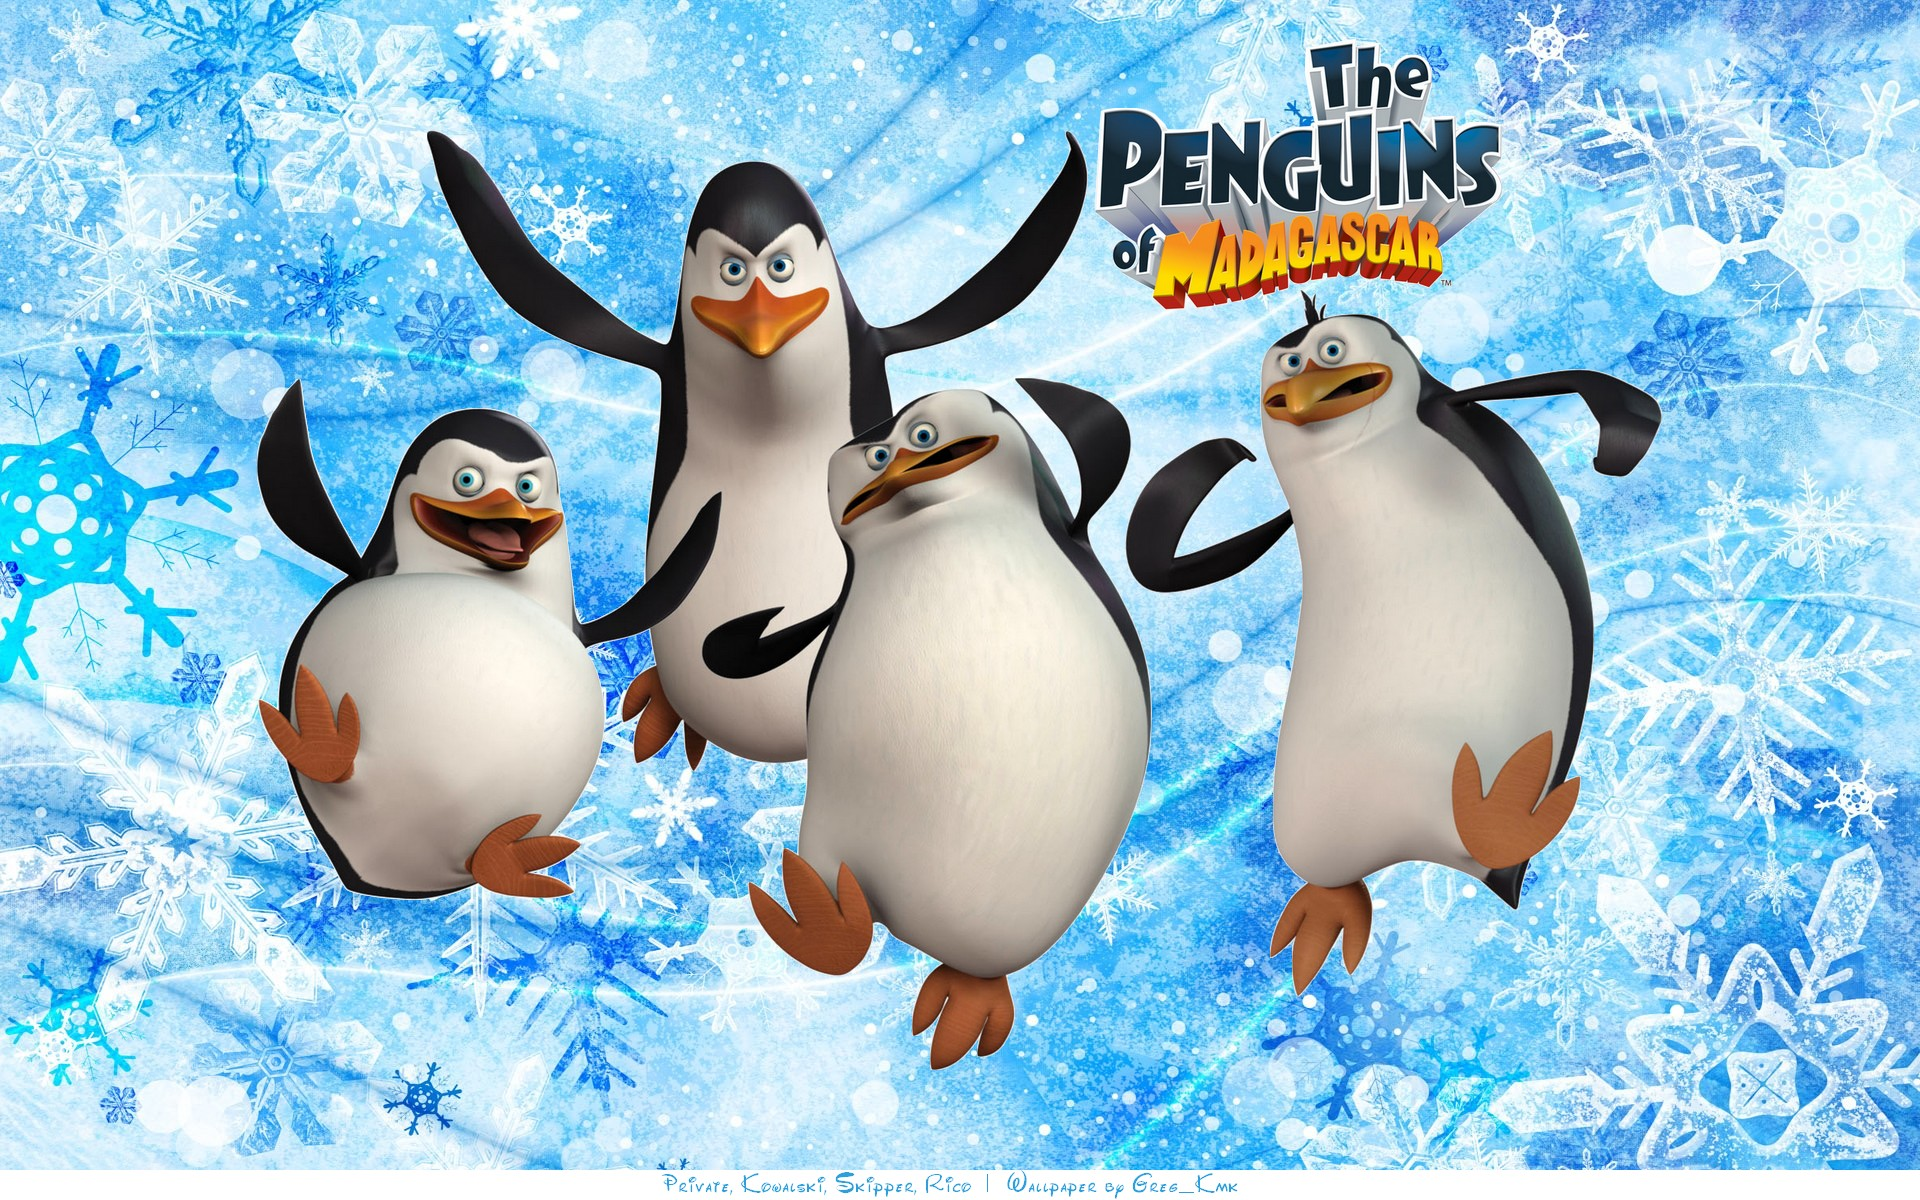 46+] Penguins of Madagascar Wallpaper on WallpaperSafari